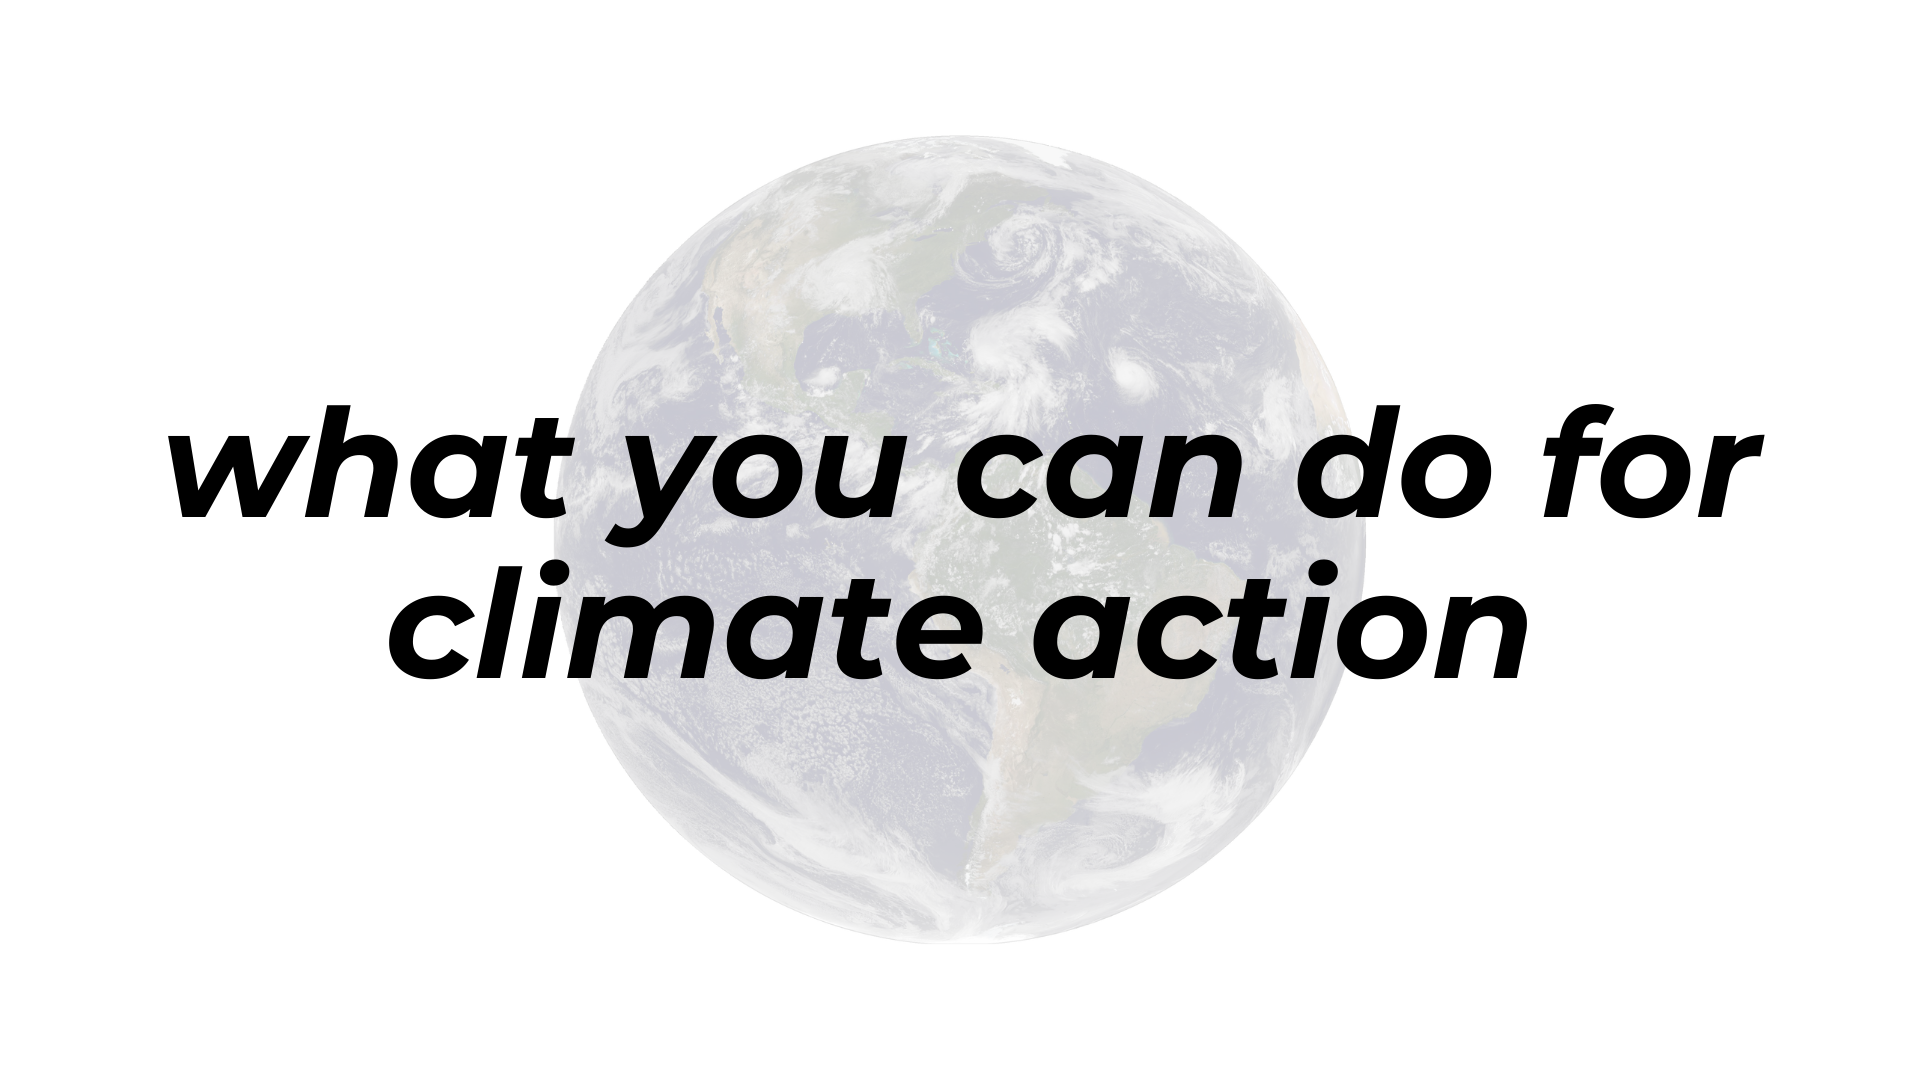 What you can do for climate action